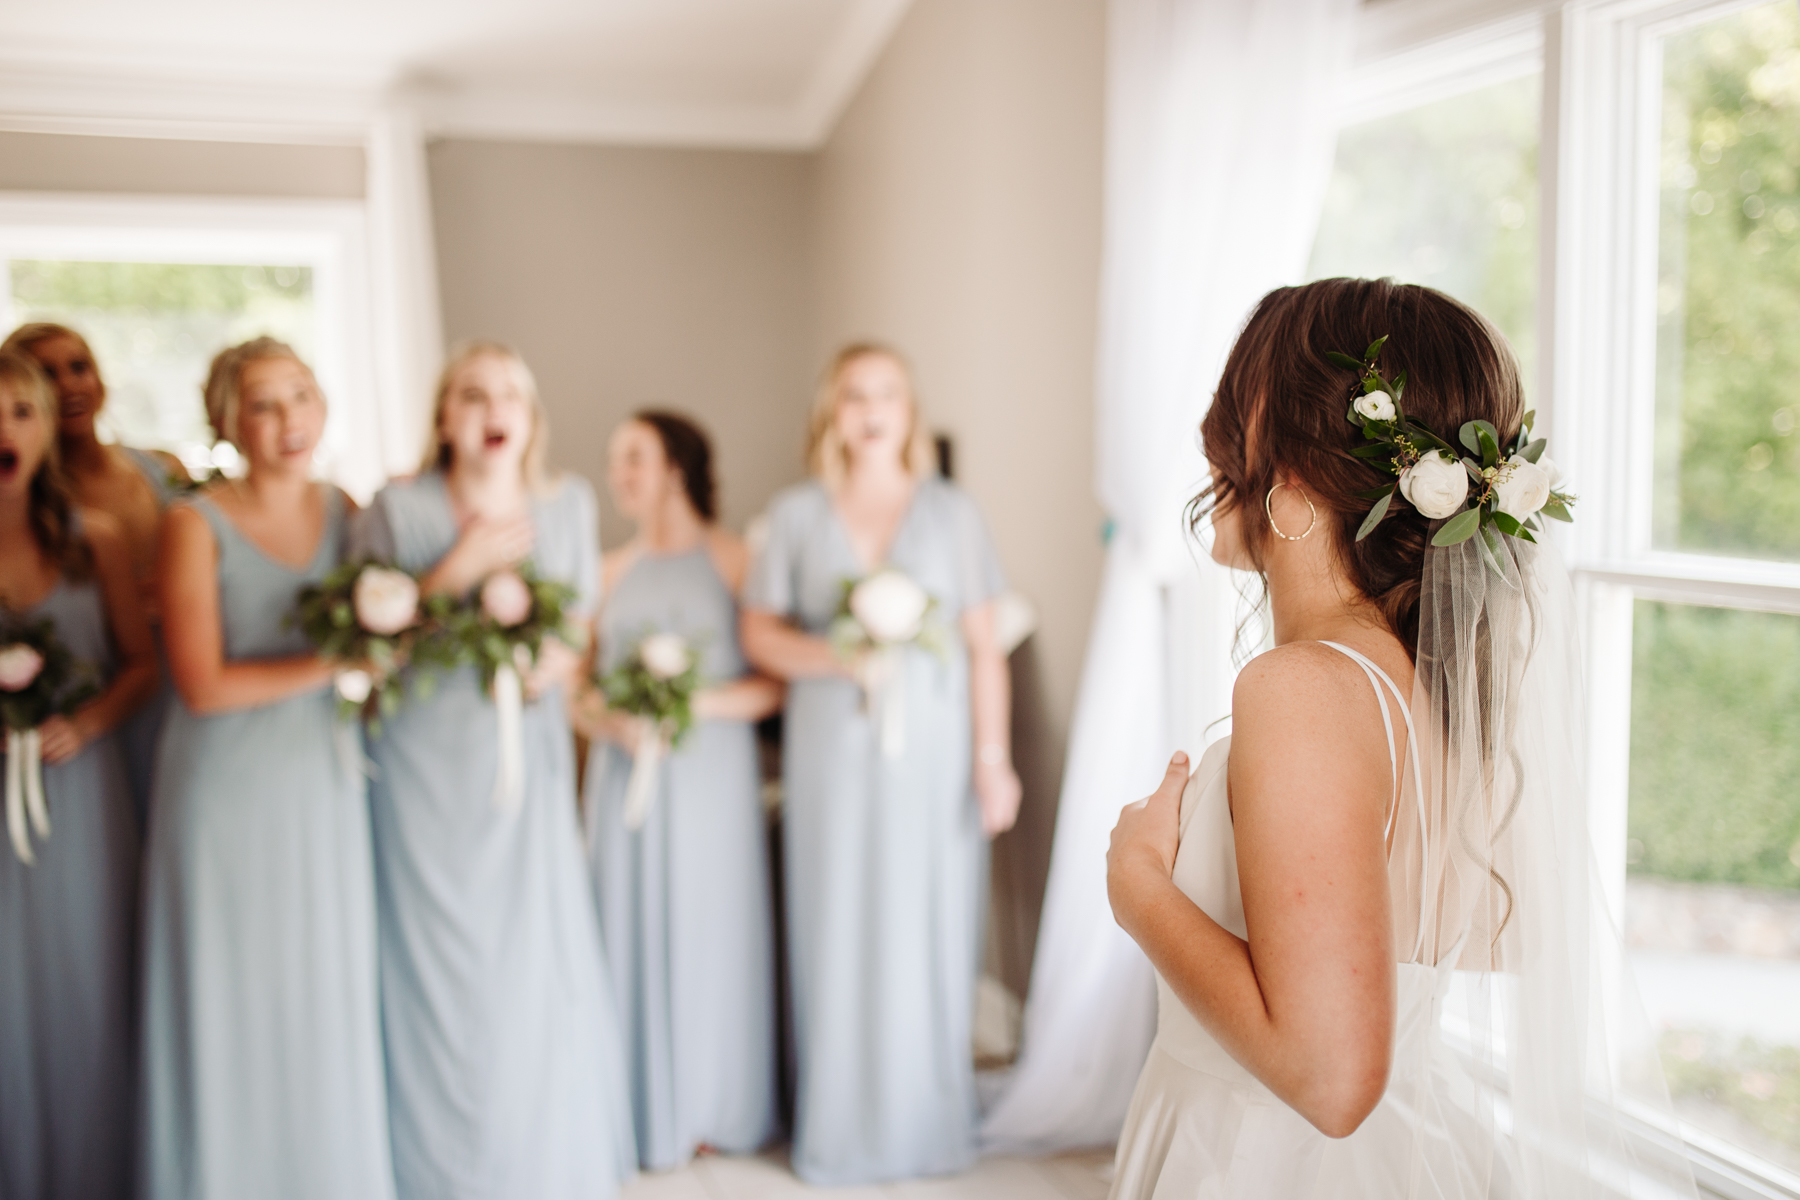 Bridesmaid reveal before a Sunny summer wedding at Dara's Garden in Knoxville, Tennessee